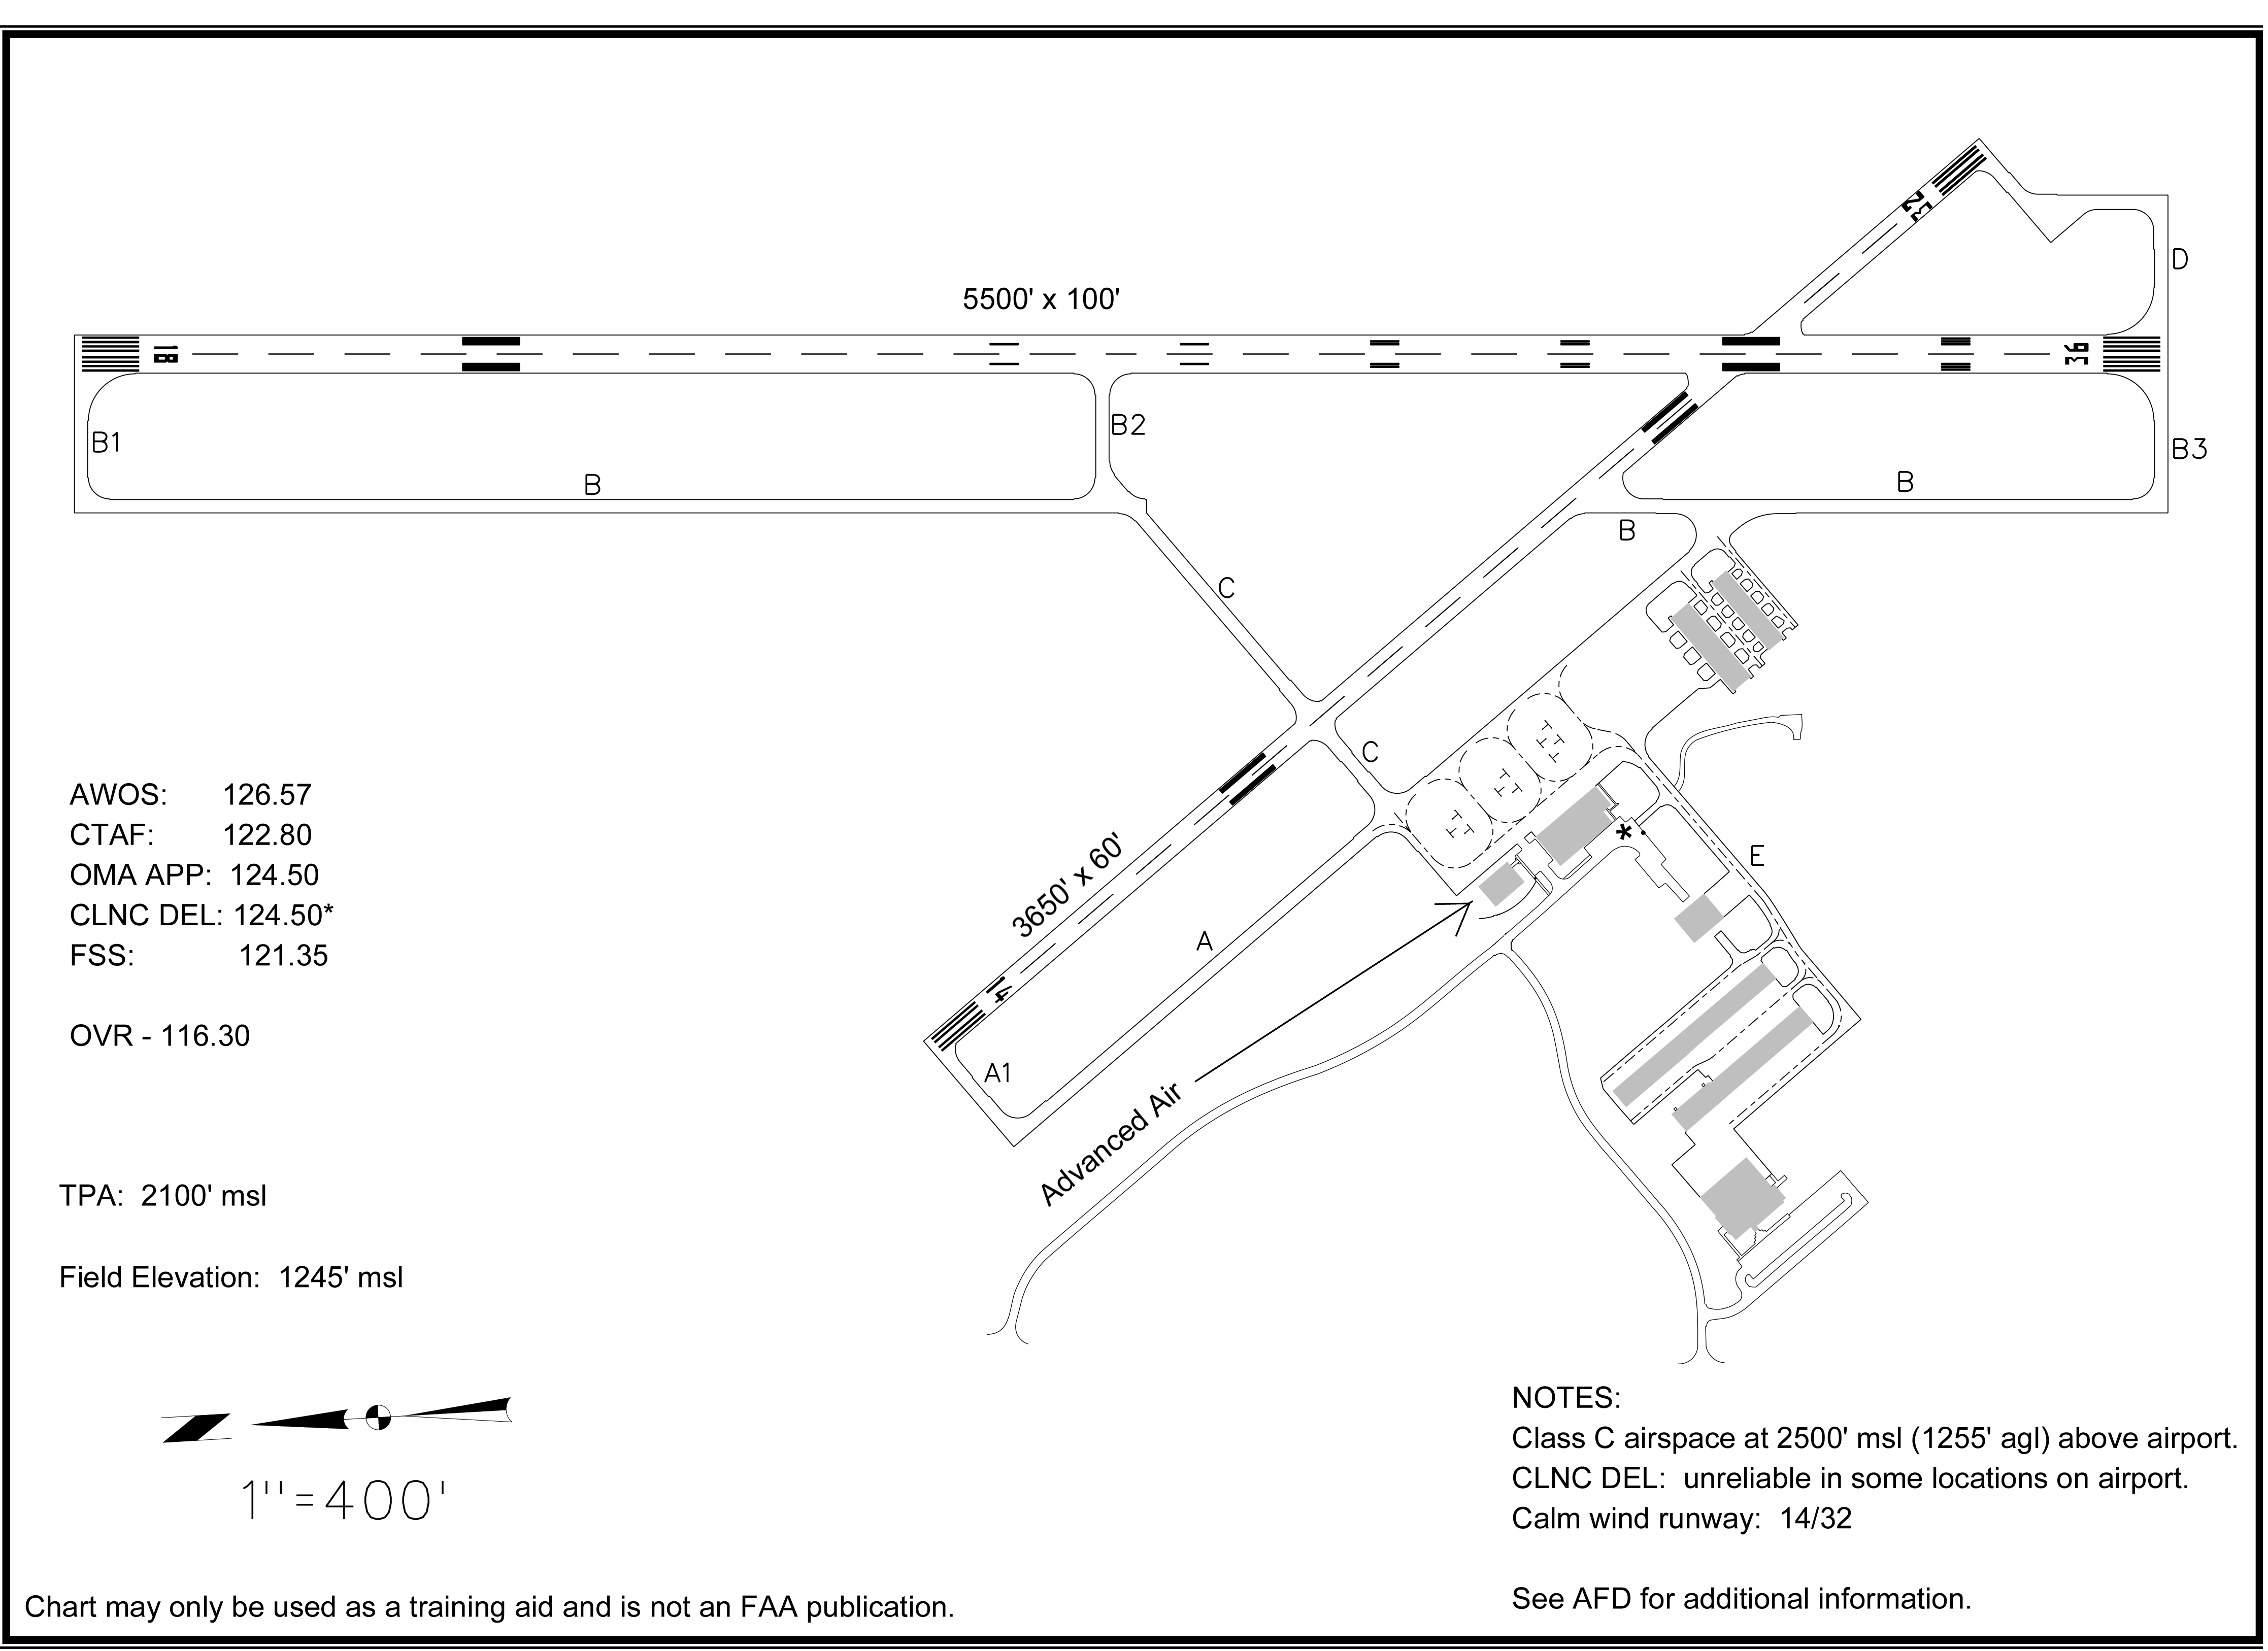 Council bluffs airport authority cbf airport diagram pooptronica